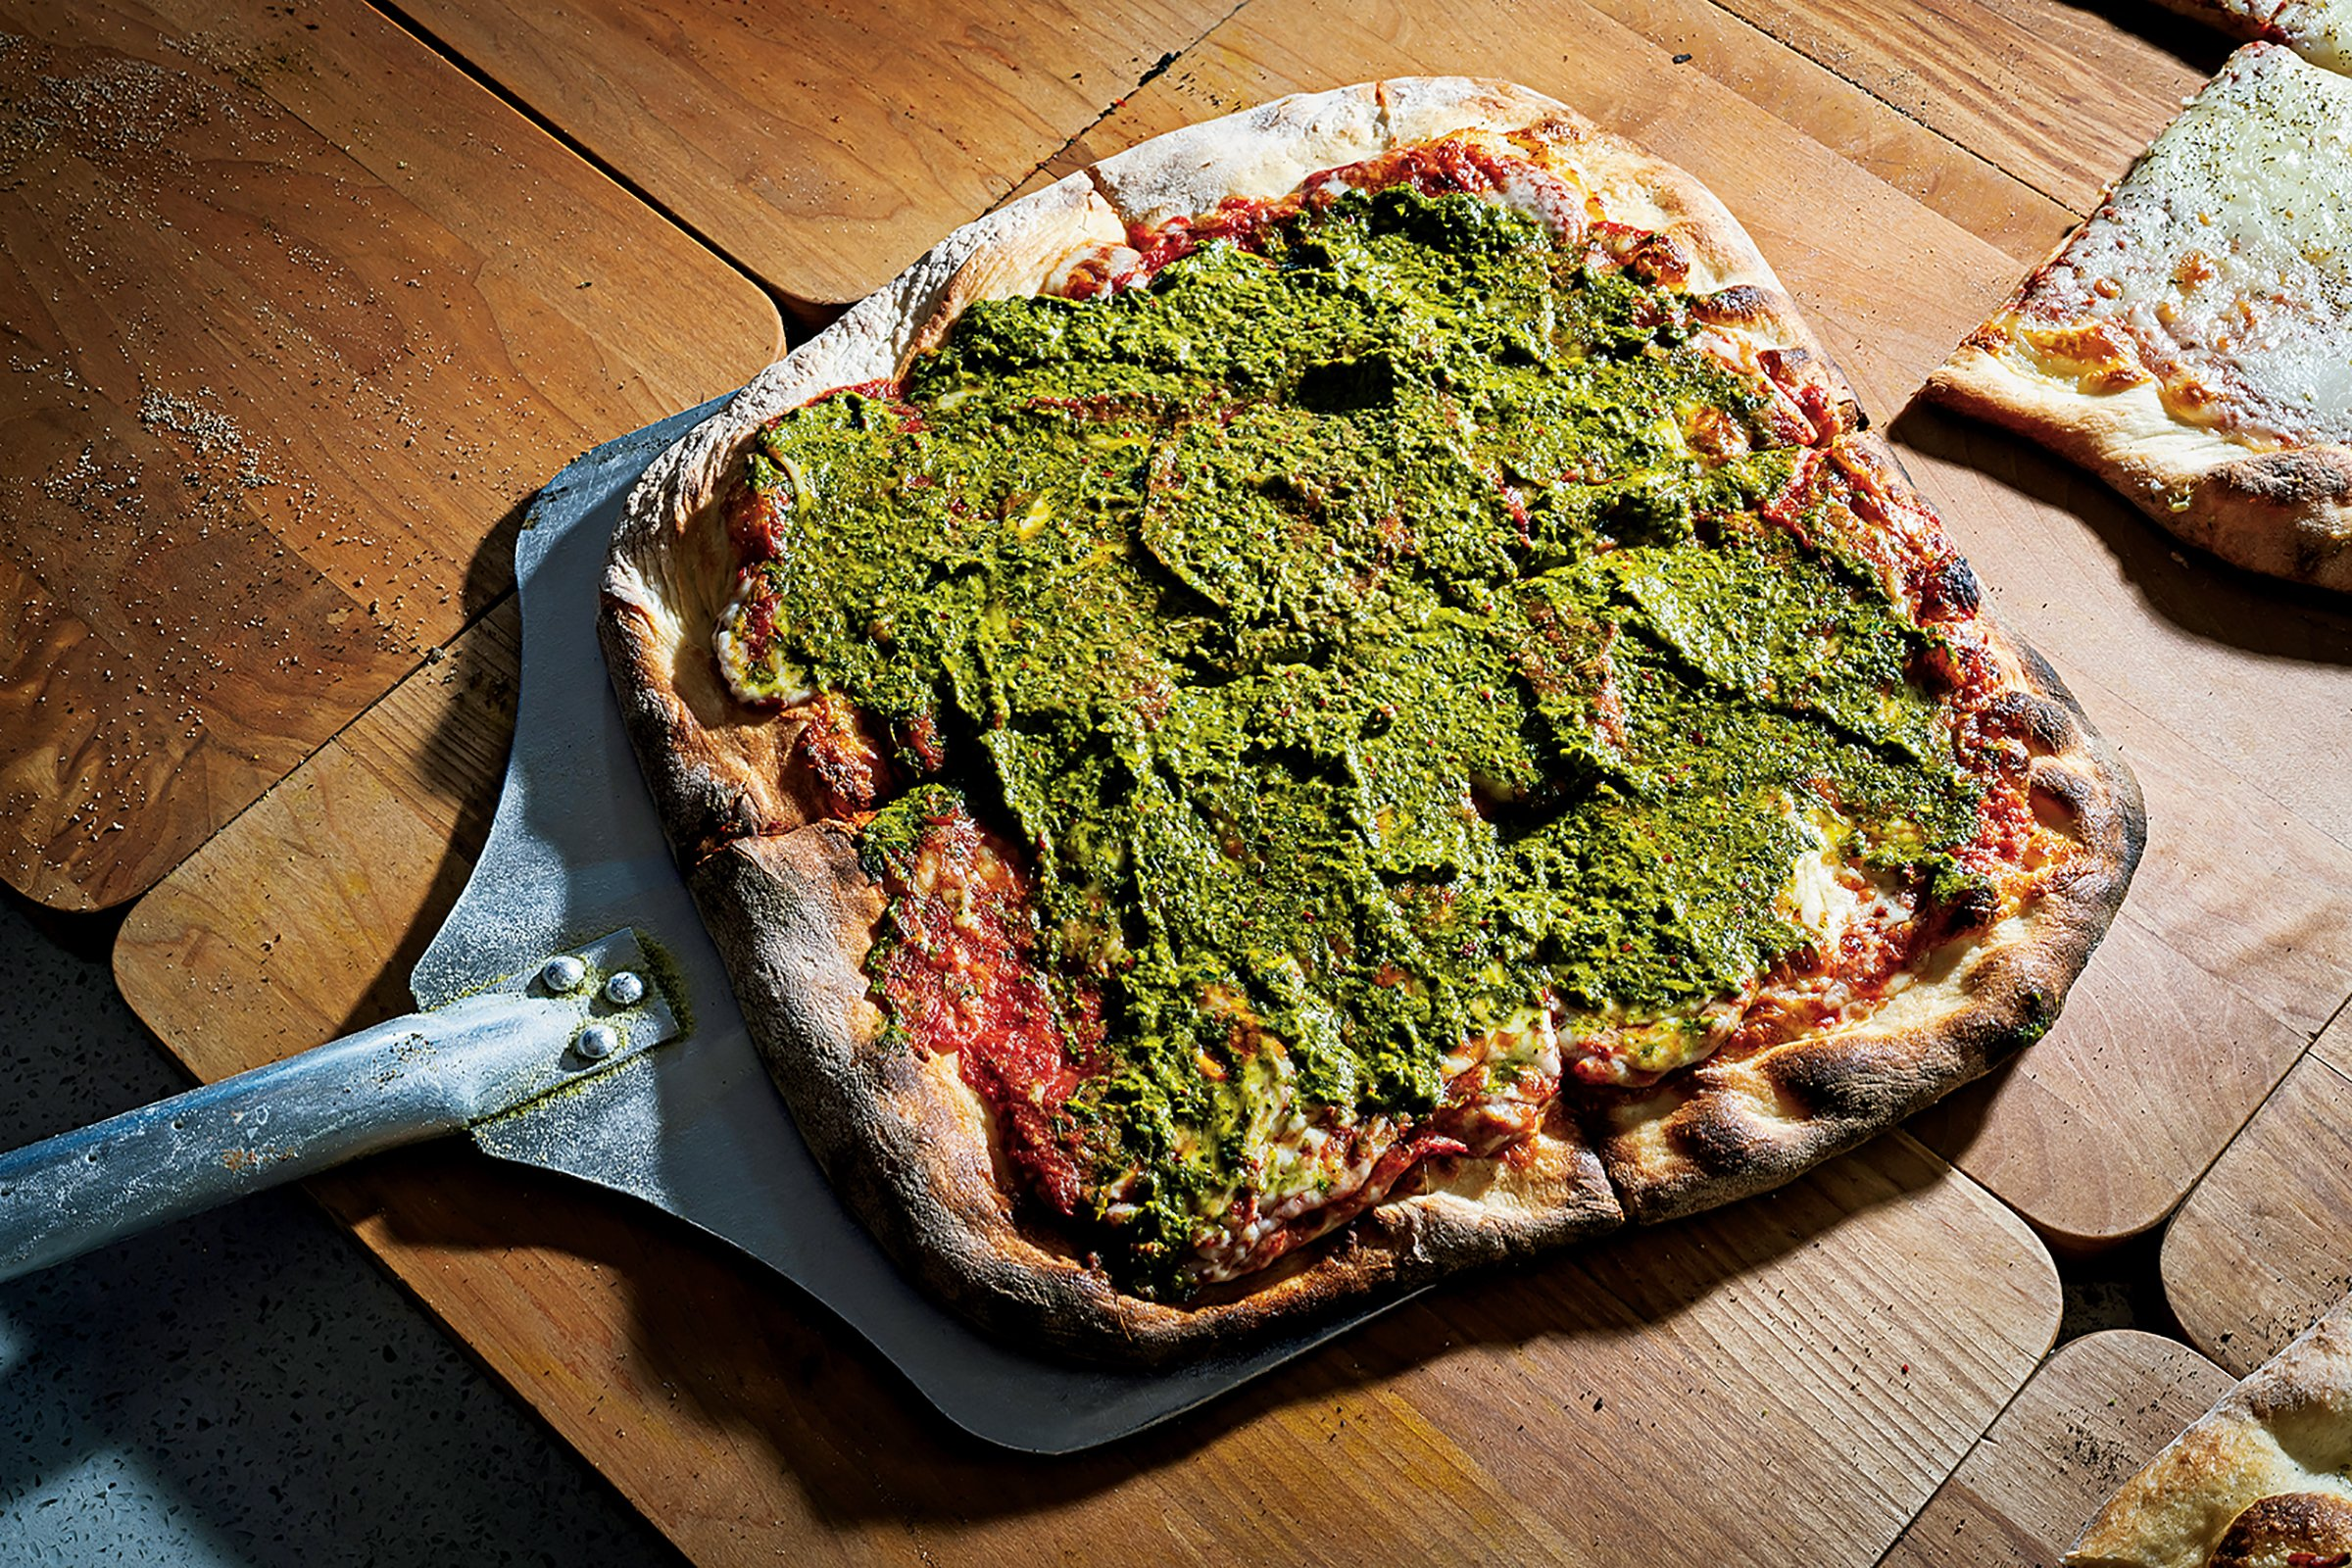 The chimichurri sauced pie at Sliced.